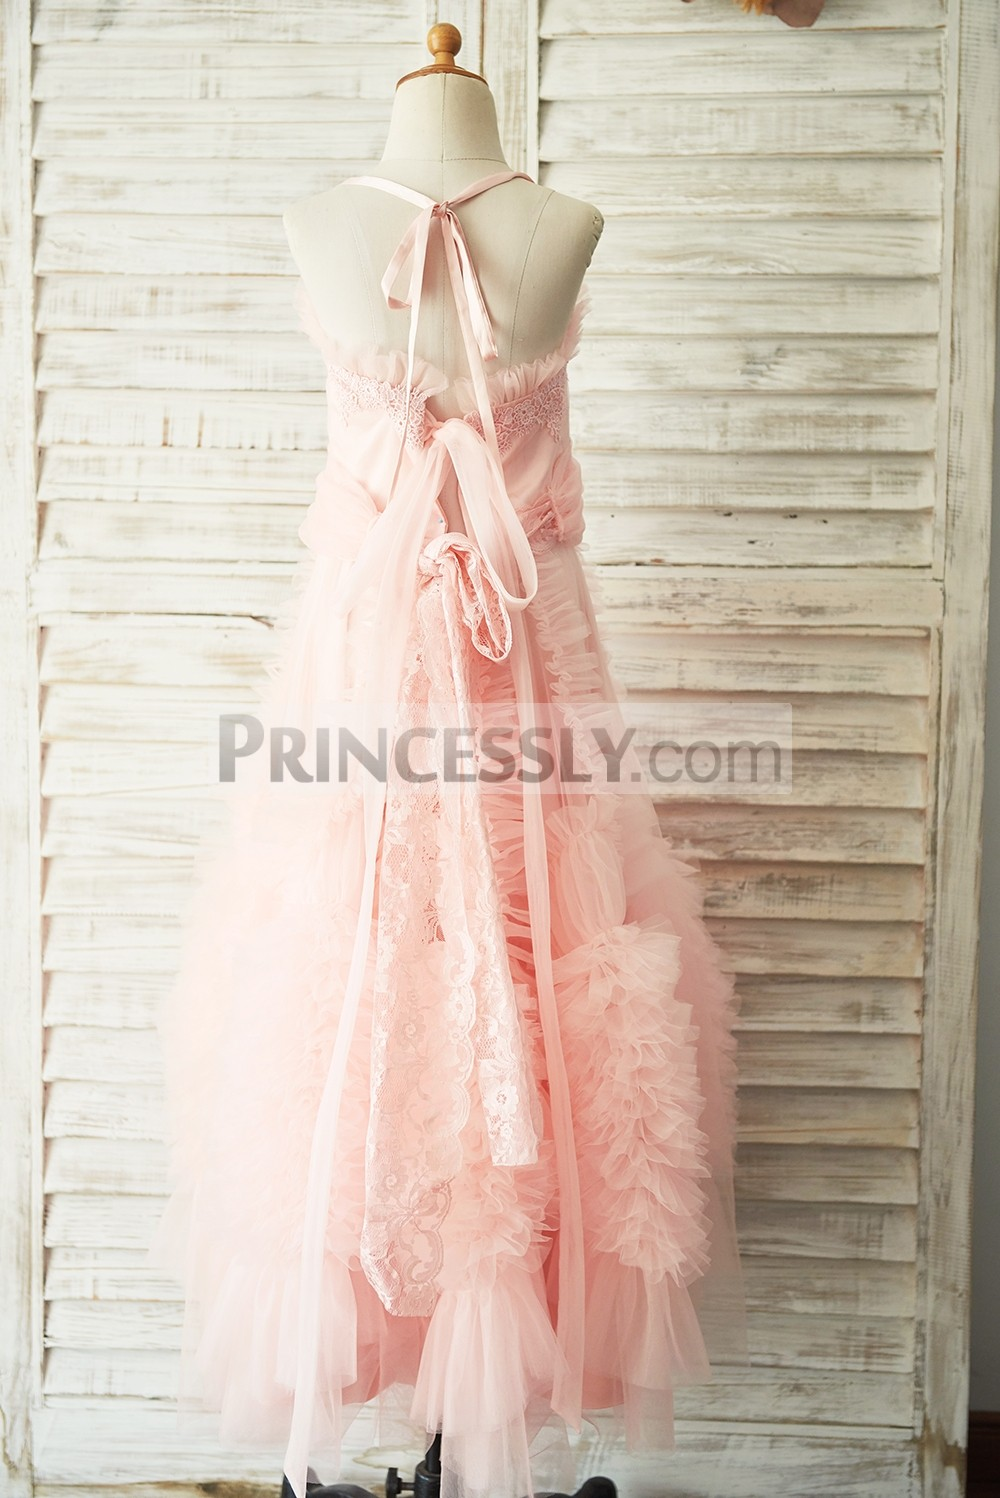 Backless lace up fuzzy ruffles tulle pink wedding baby girl dress